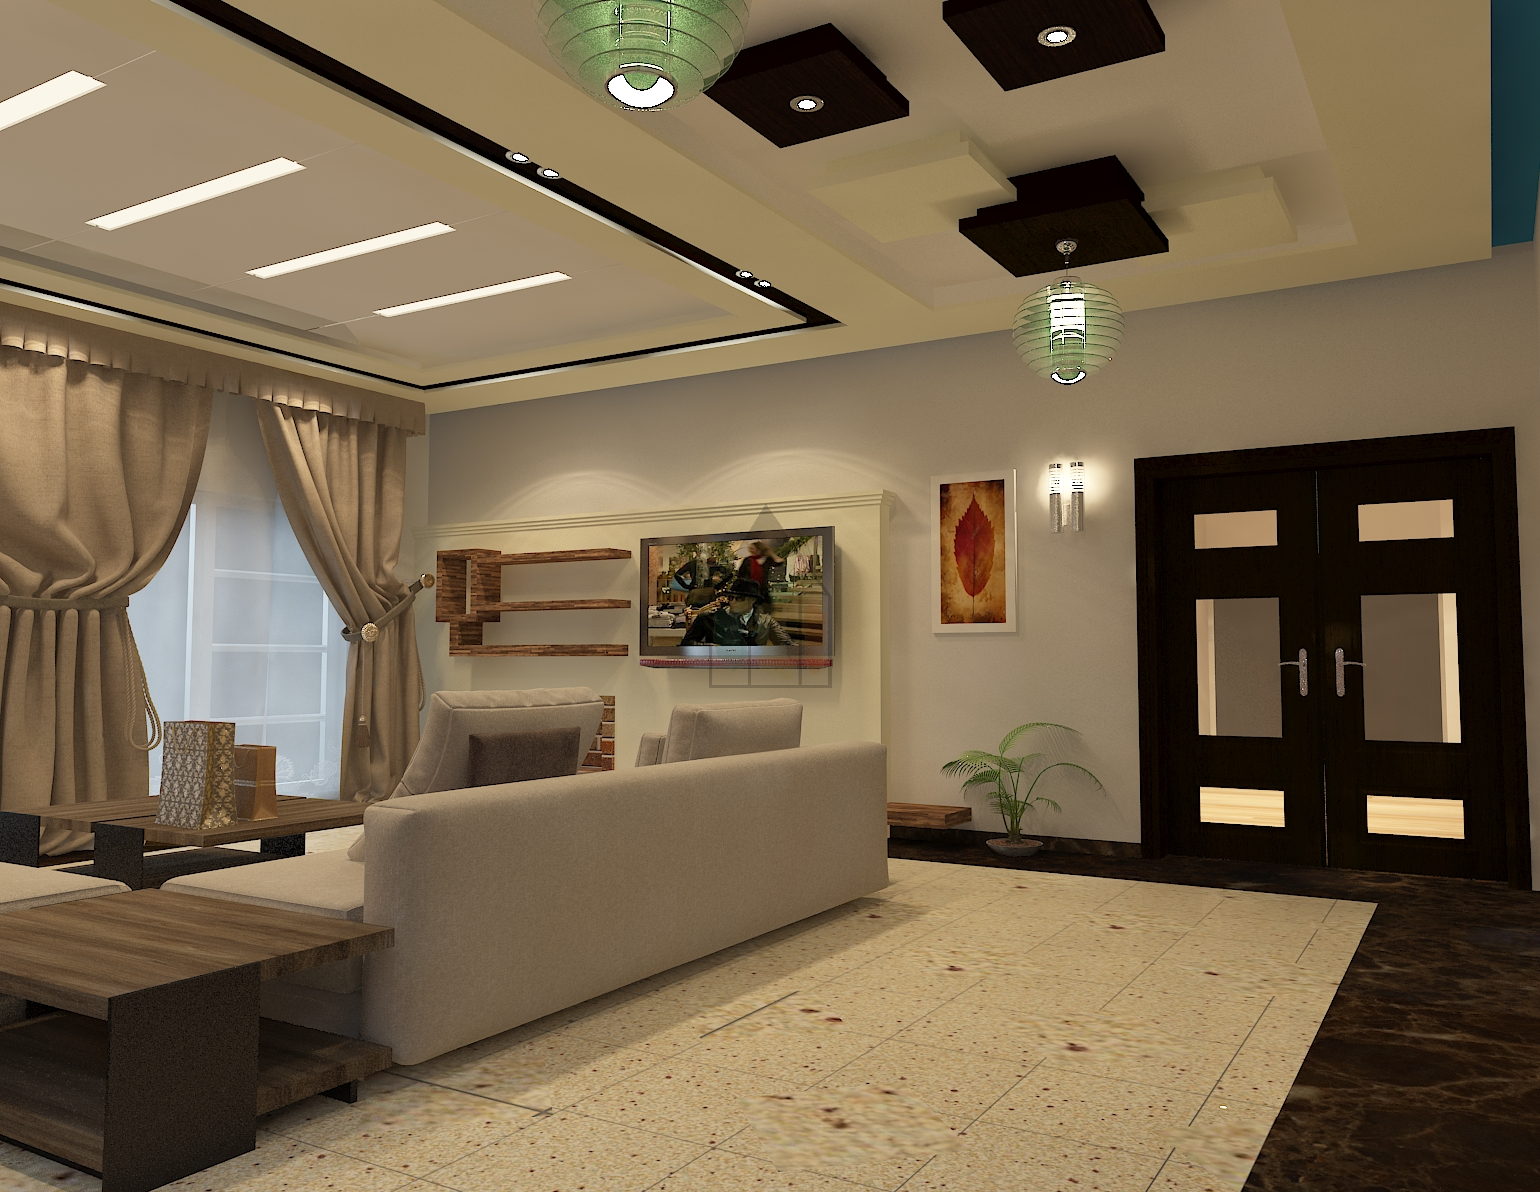 Tv lounge designs in pakistan from many other tv lounge for Room design pakistan